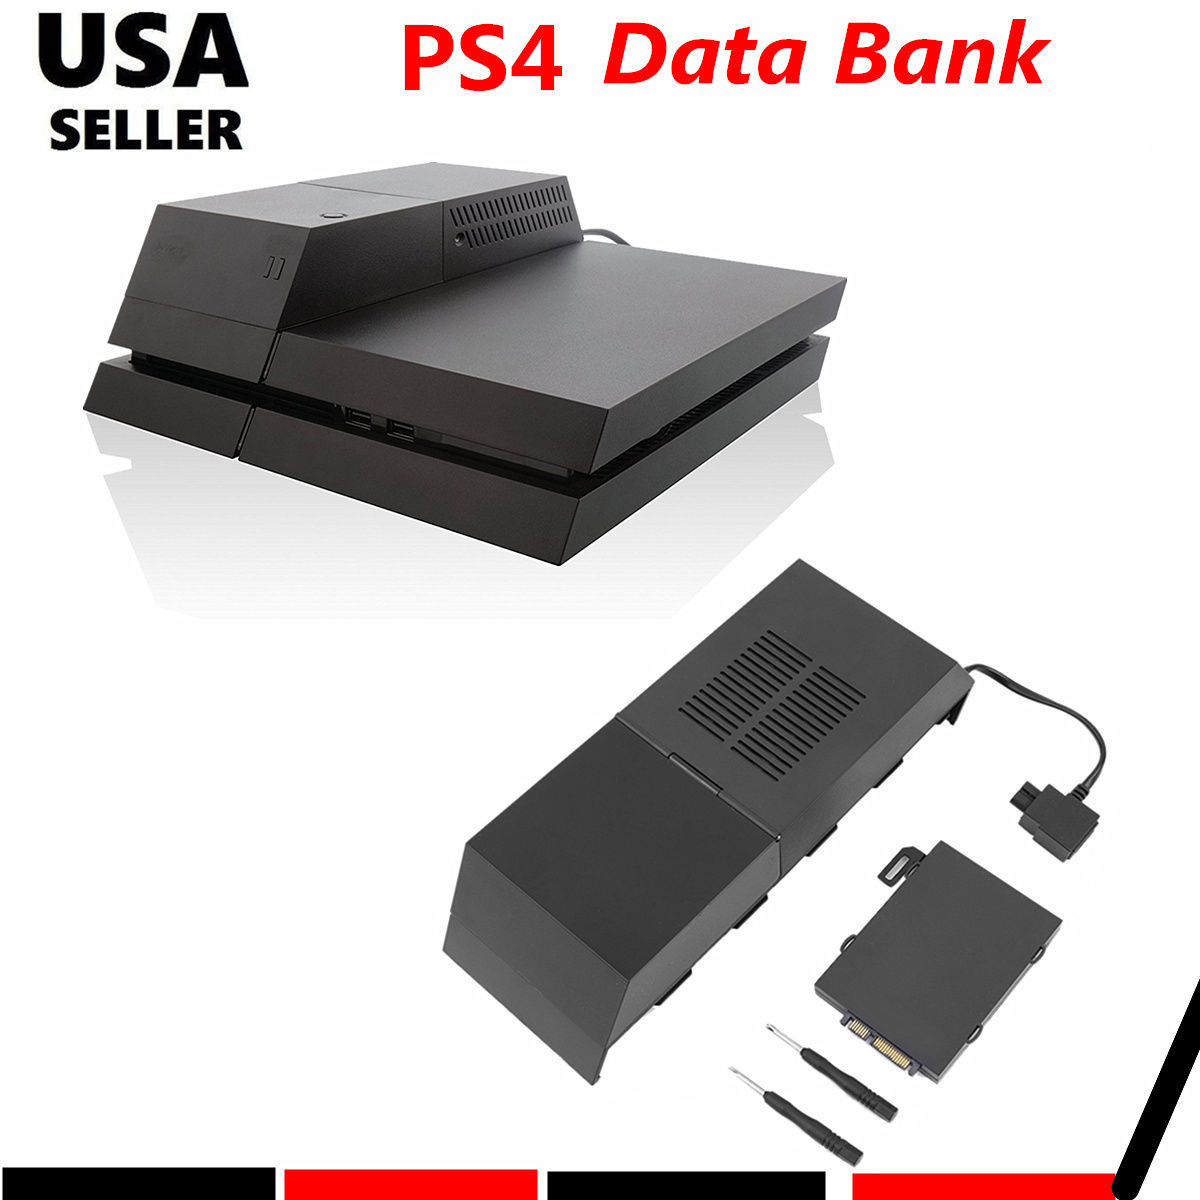 HJY For PS4 HDD Extender Data Bank 3.5 inch HDD Extender Enclosure Upgrade Dock